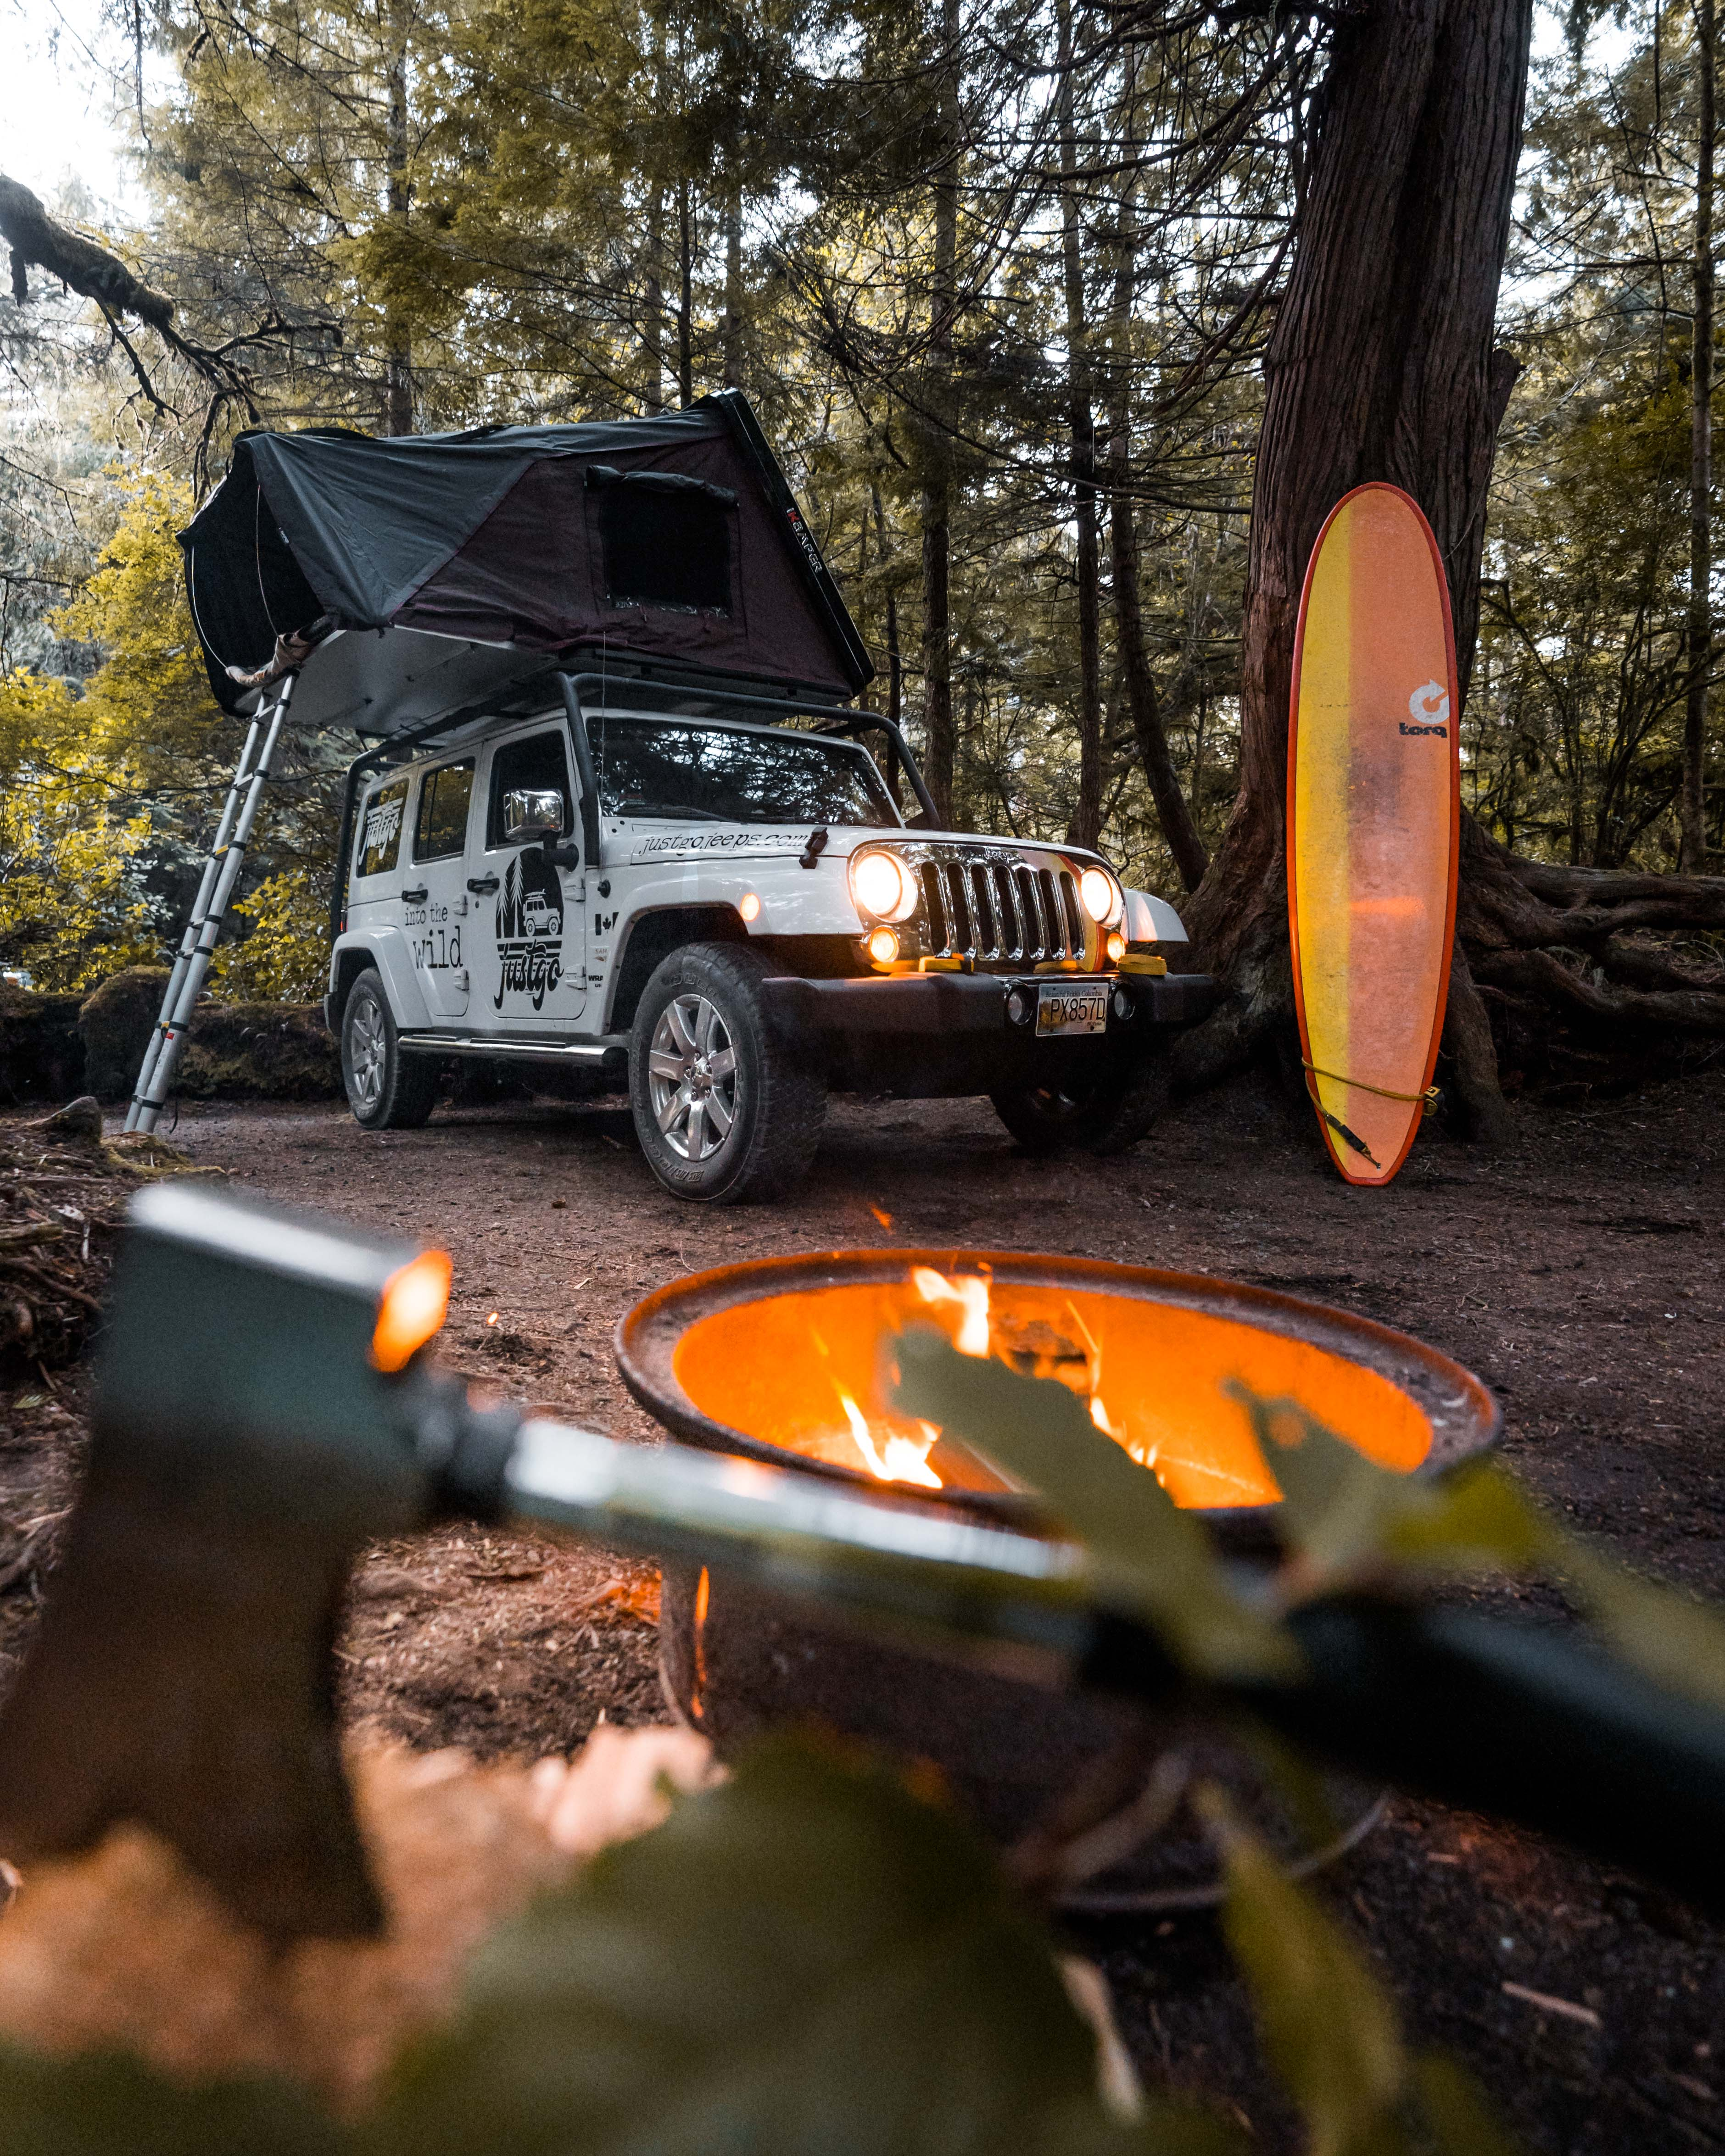 jeep rental vancouver island canada roof top tent nanaimo victoria